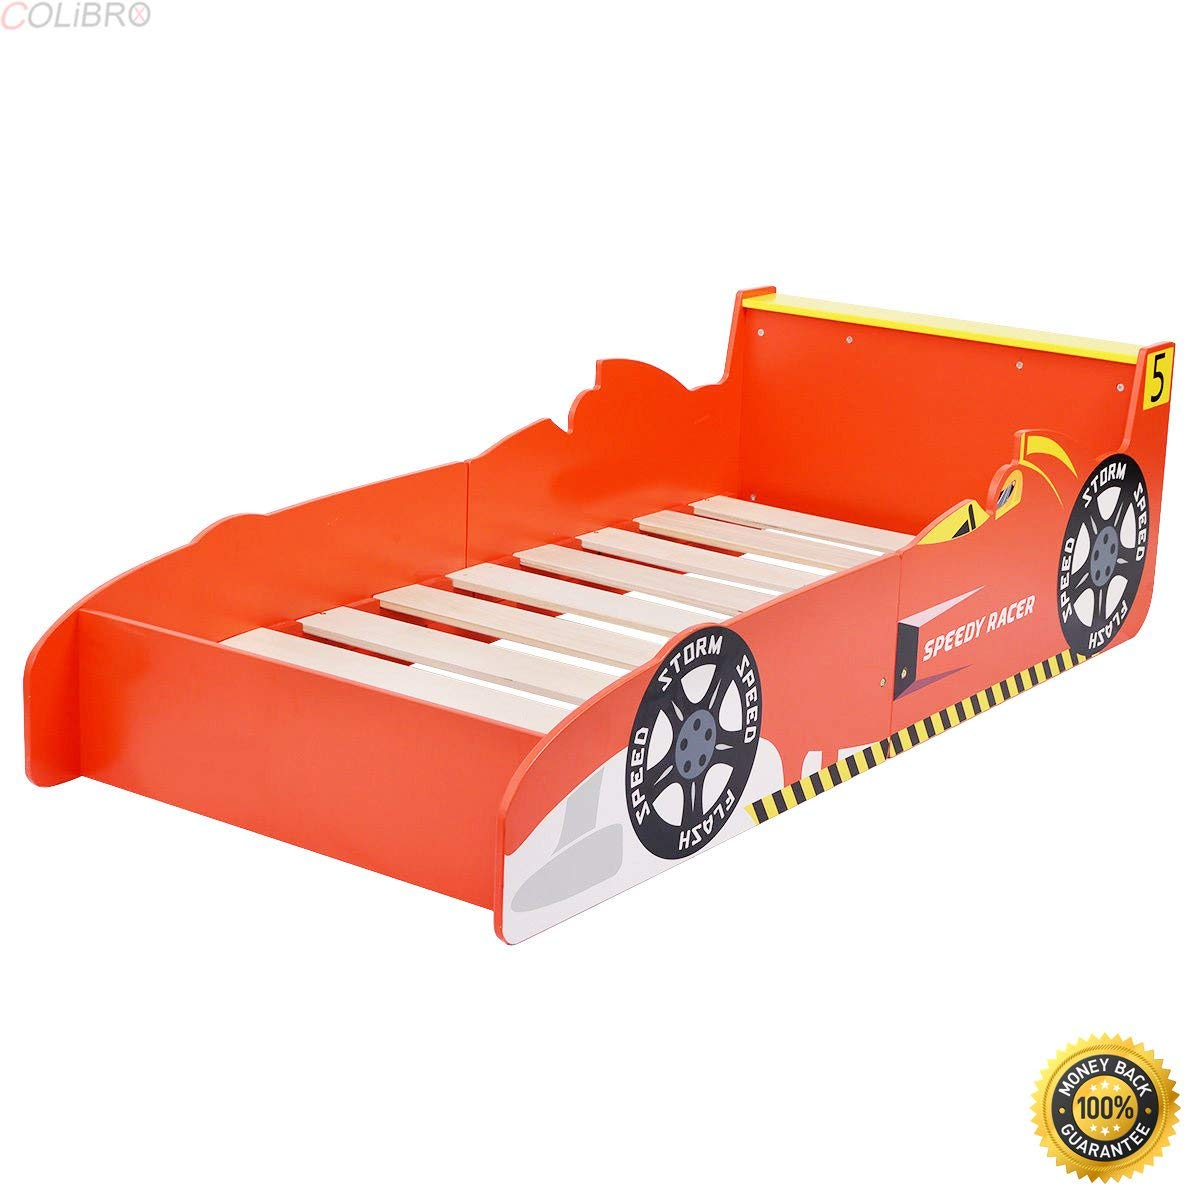 Cheap Toddler Beds Buy Colibrox Kids Race Car Bed Toddler Bed Boys Child Furniture